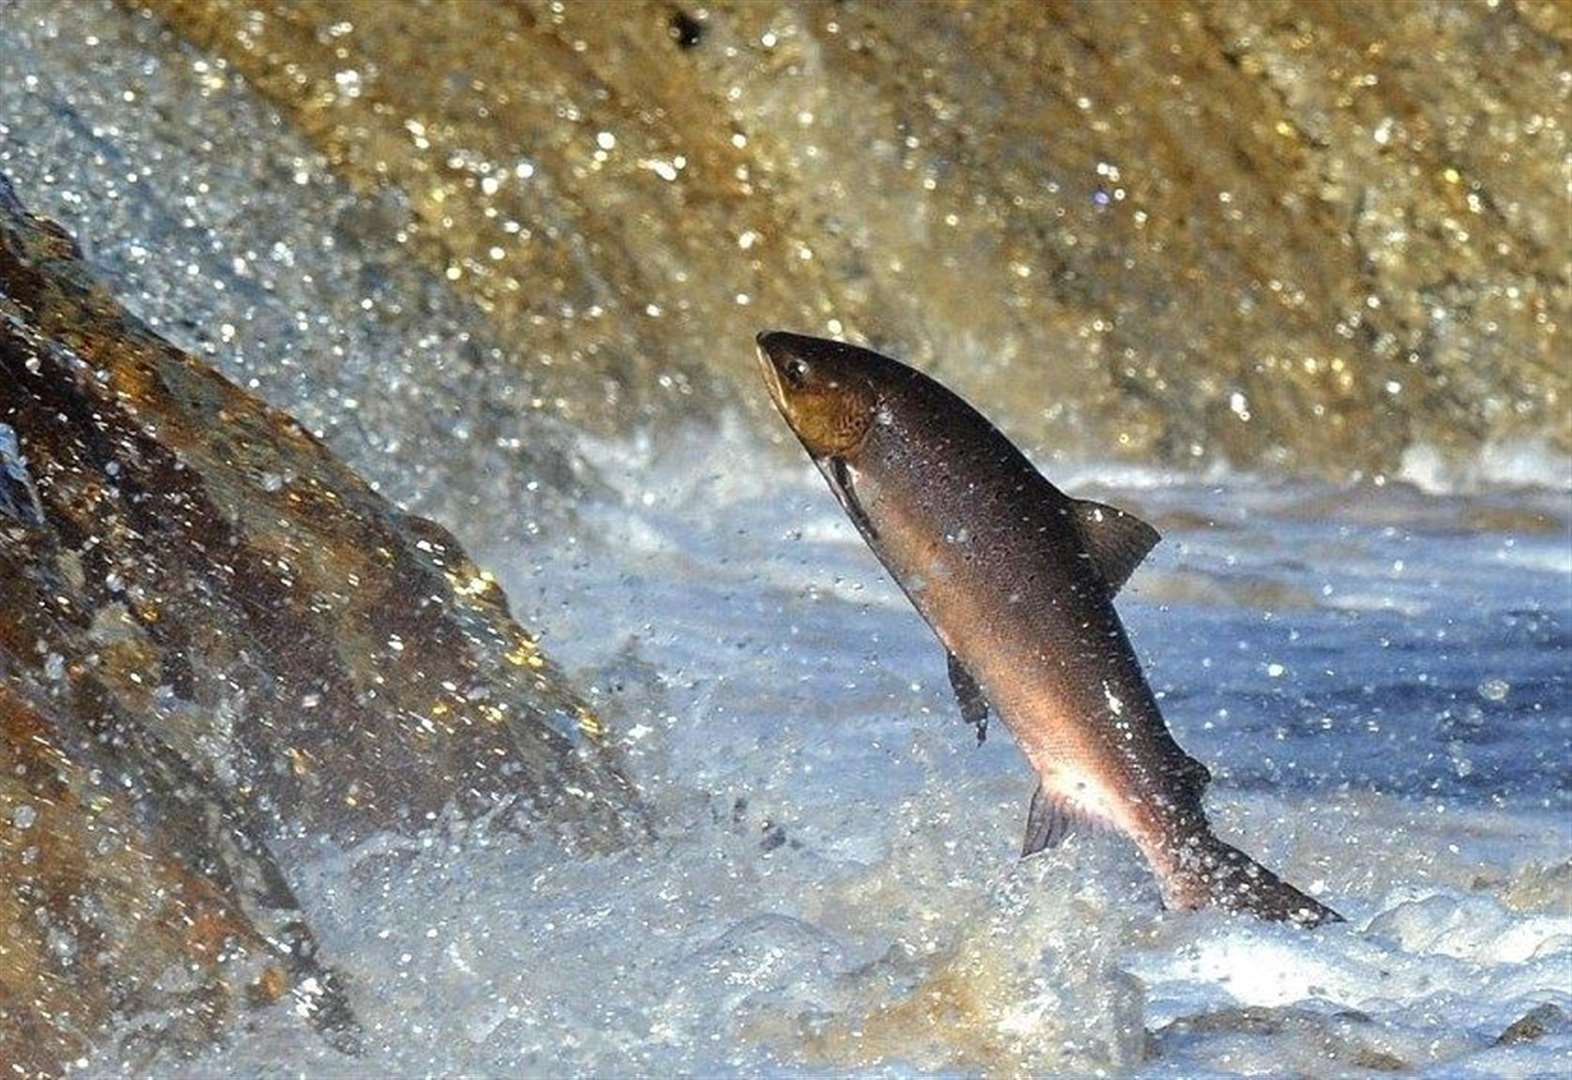 Auction bidding to save salmon